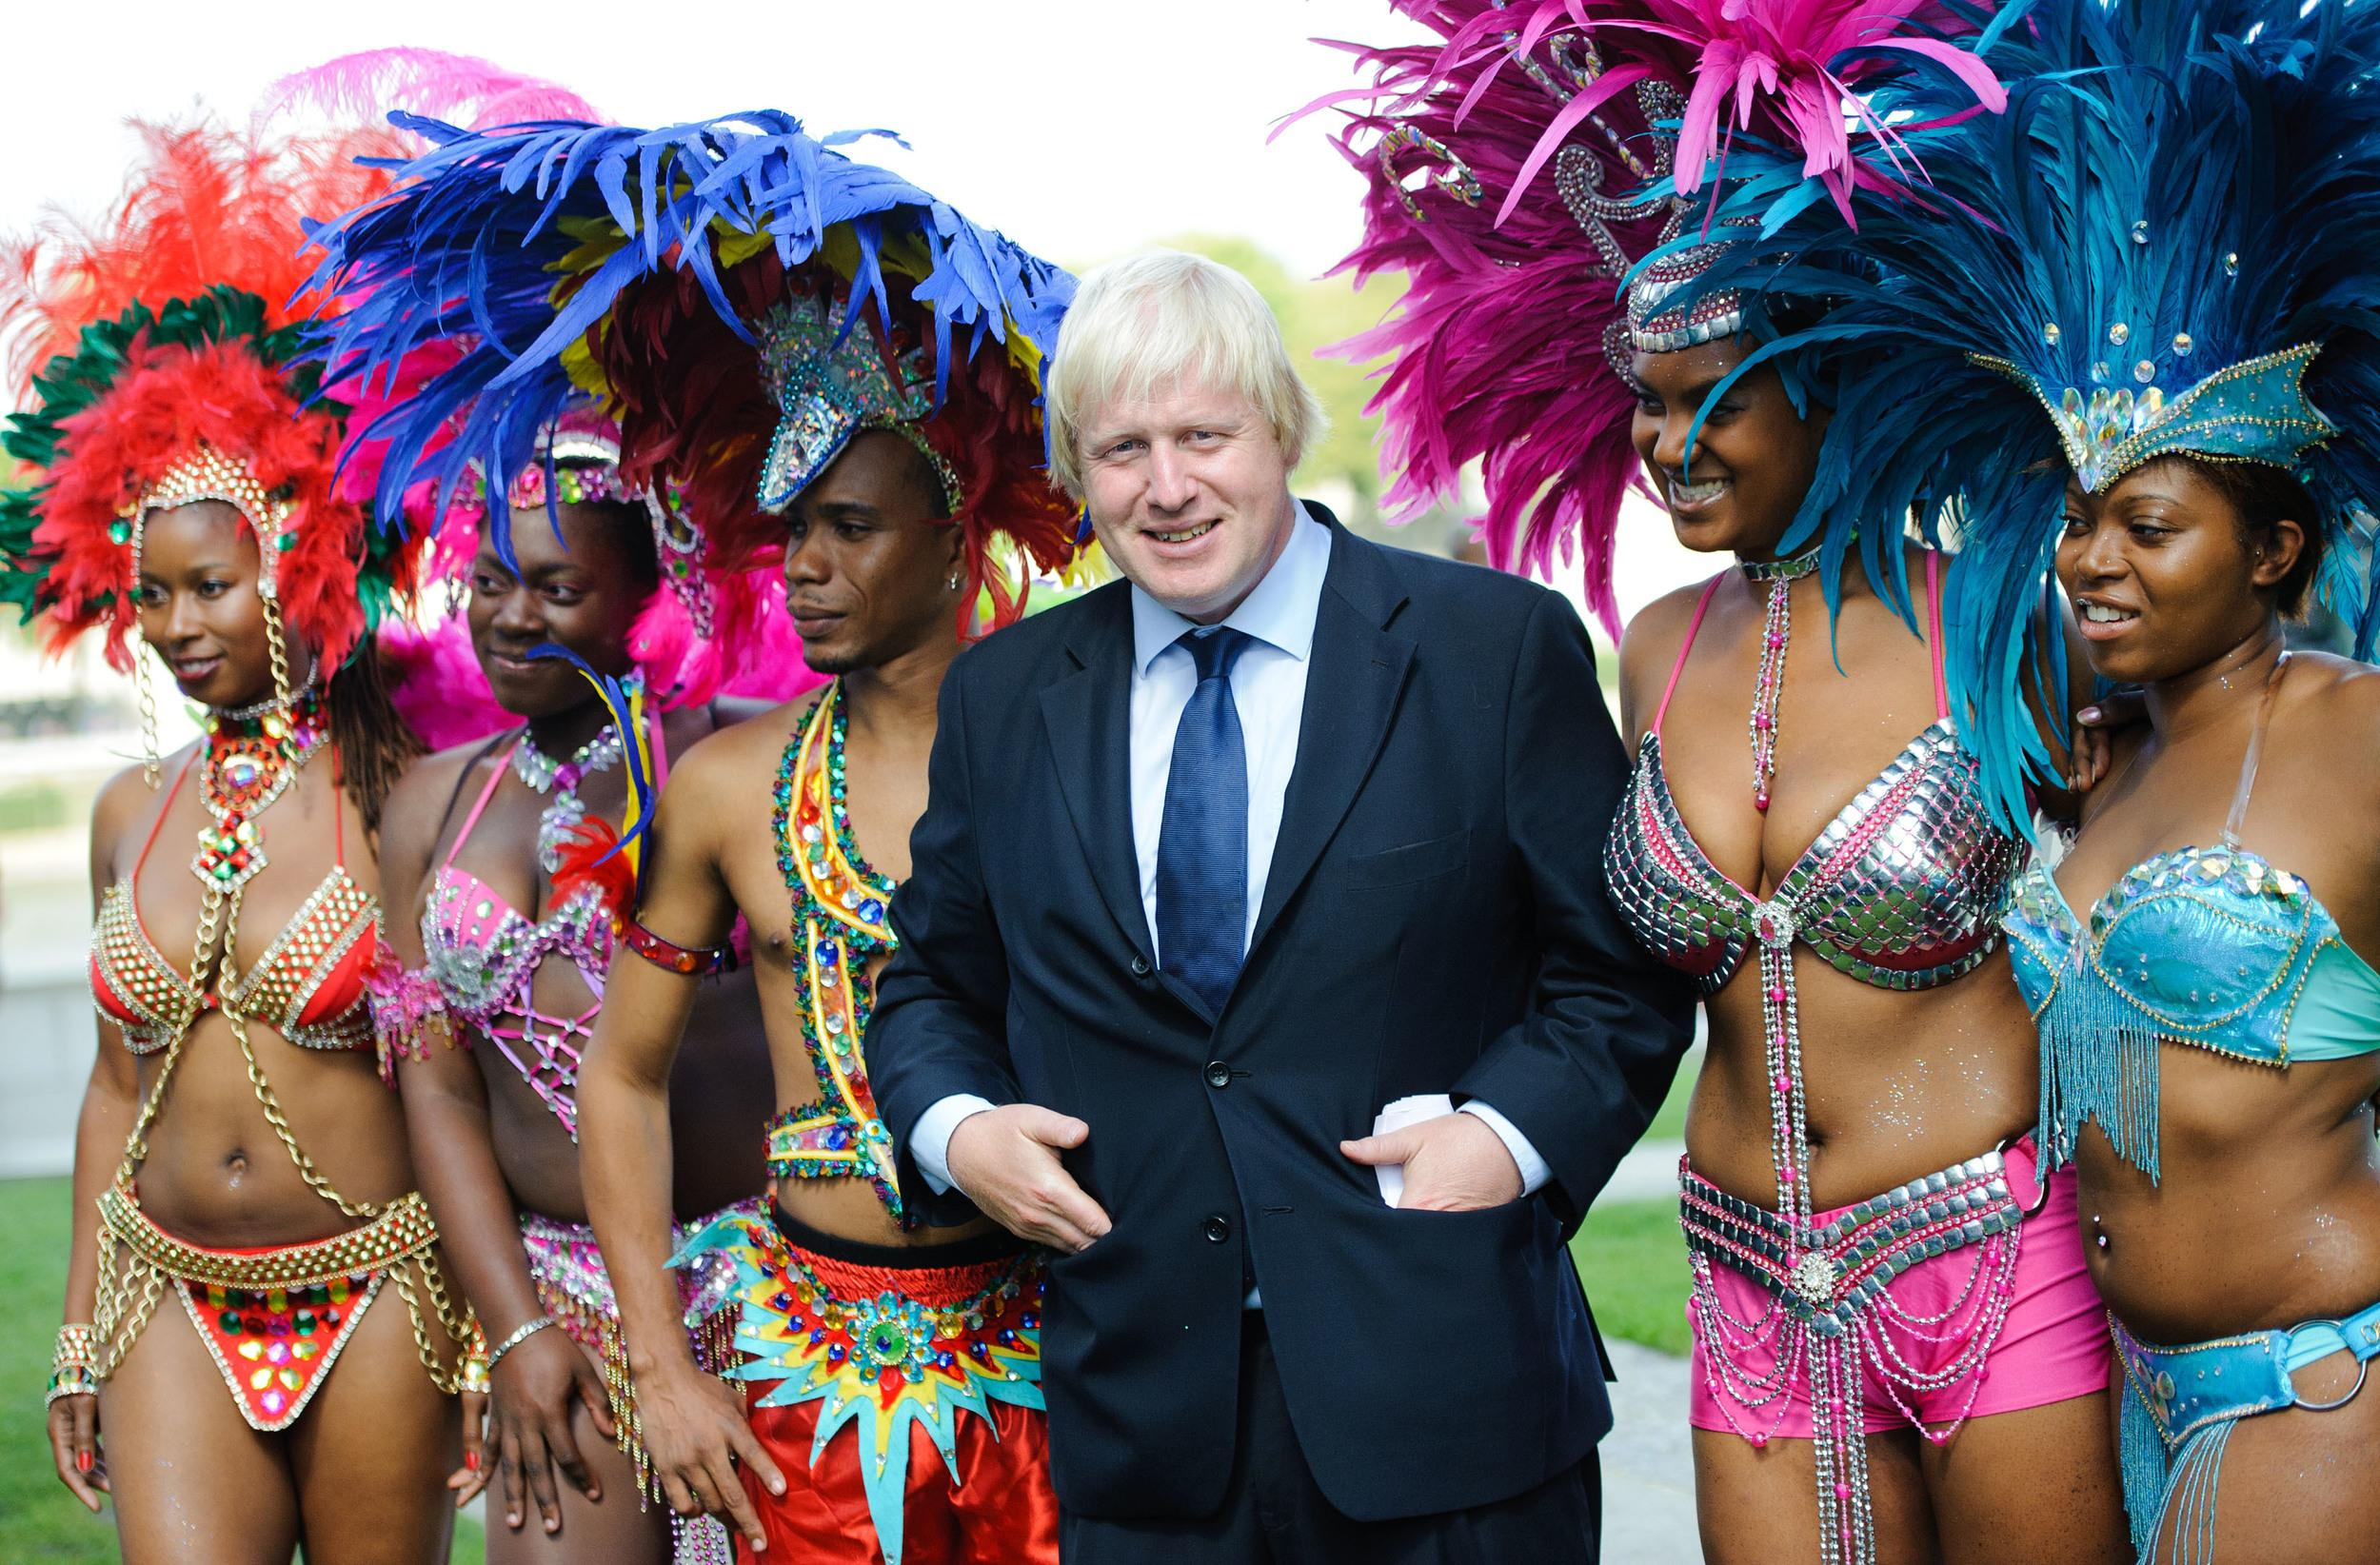 Boris Johnson pictured with members of the Genesis Mas band, who will be performing at the Notting Hill Carnival this weekend, at Potters Fields in central London.